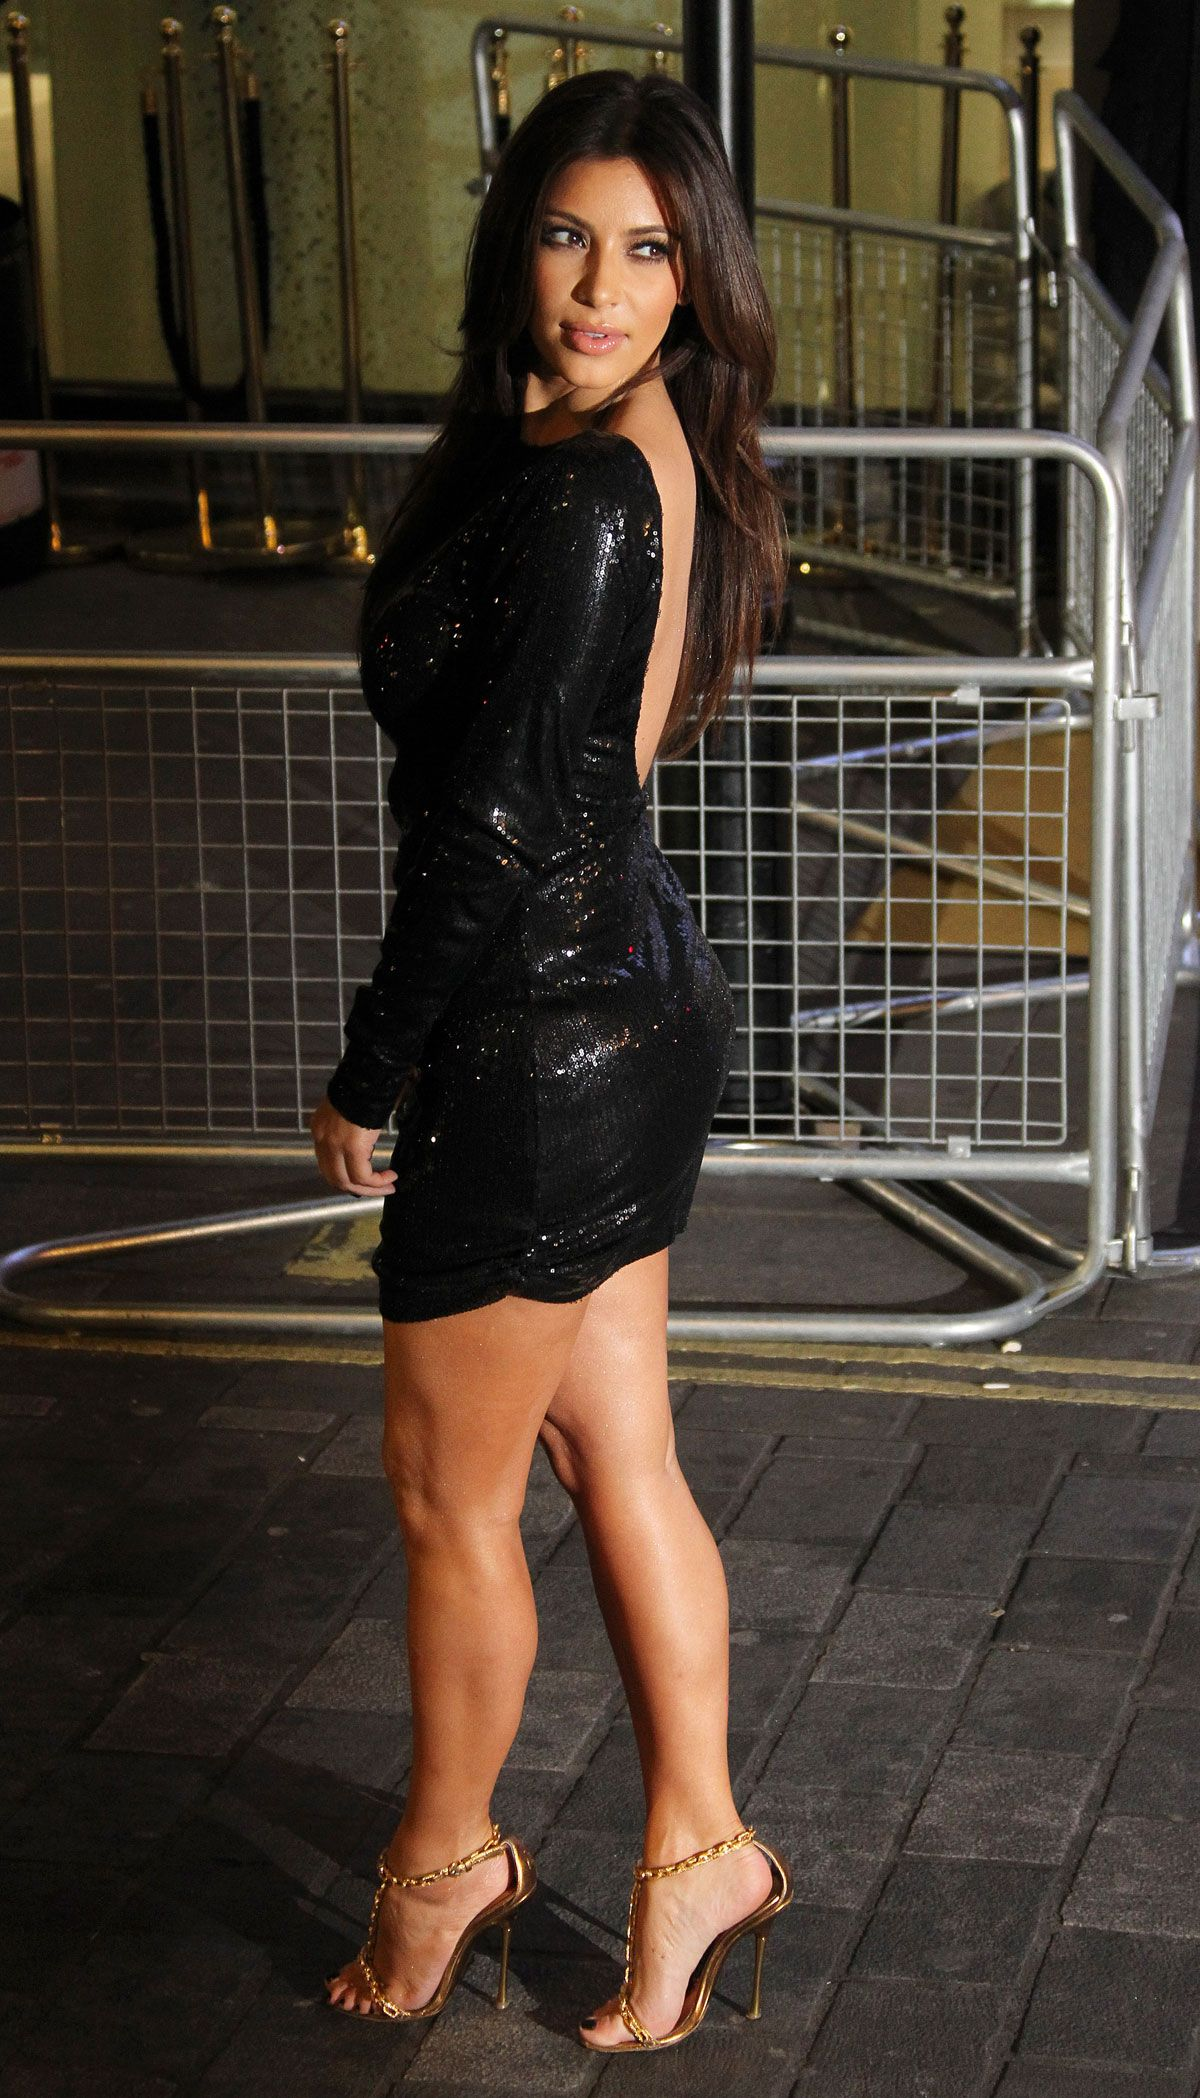 Kim Kardashian Arrives For Their Kollection Uk Launch At Acqua Club In Central London Thursday Nov